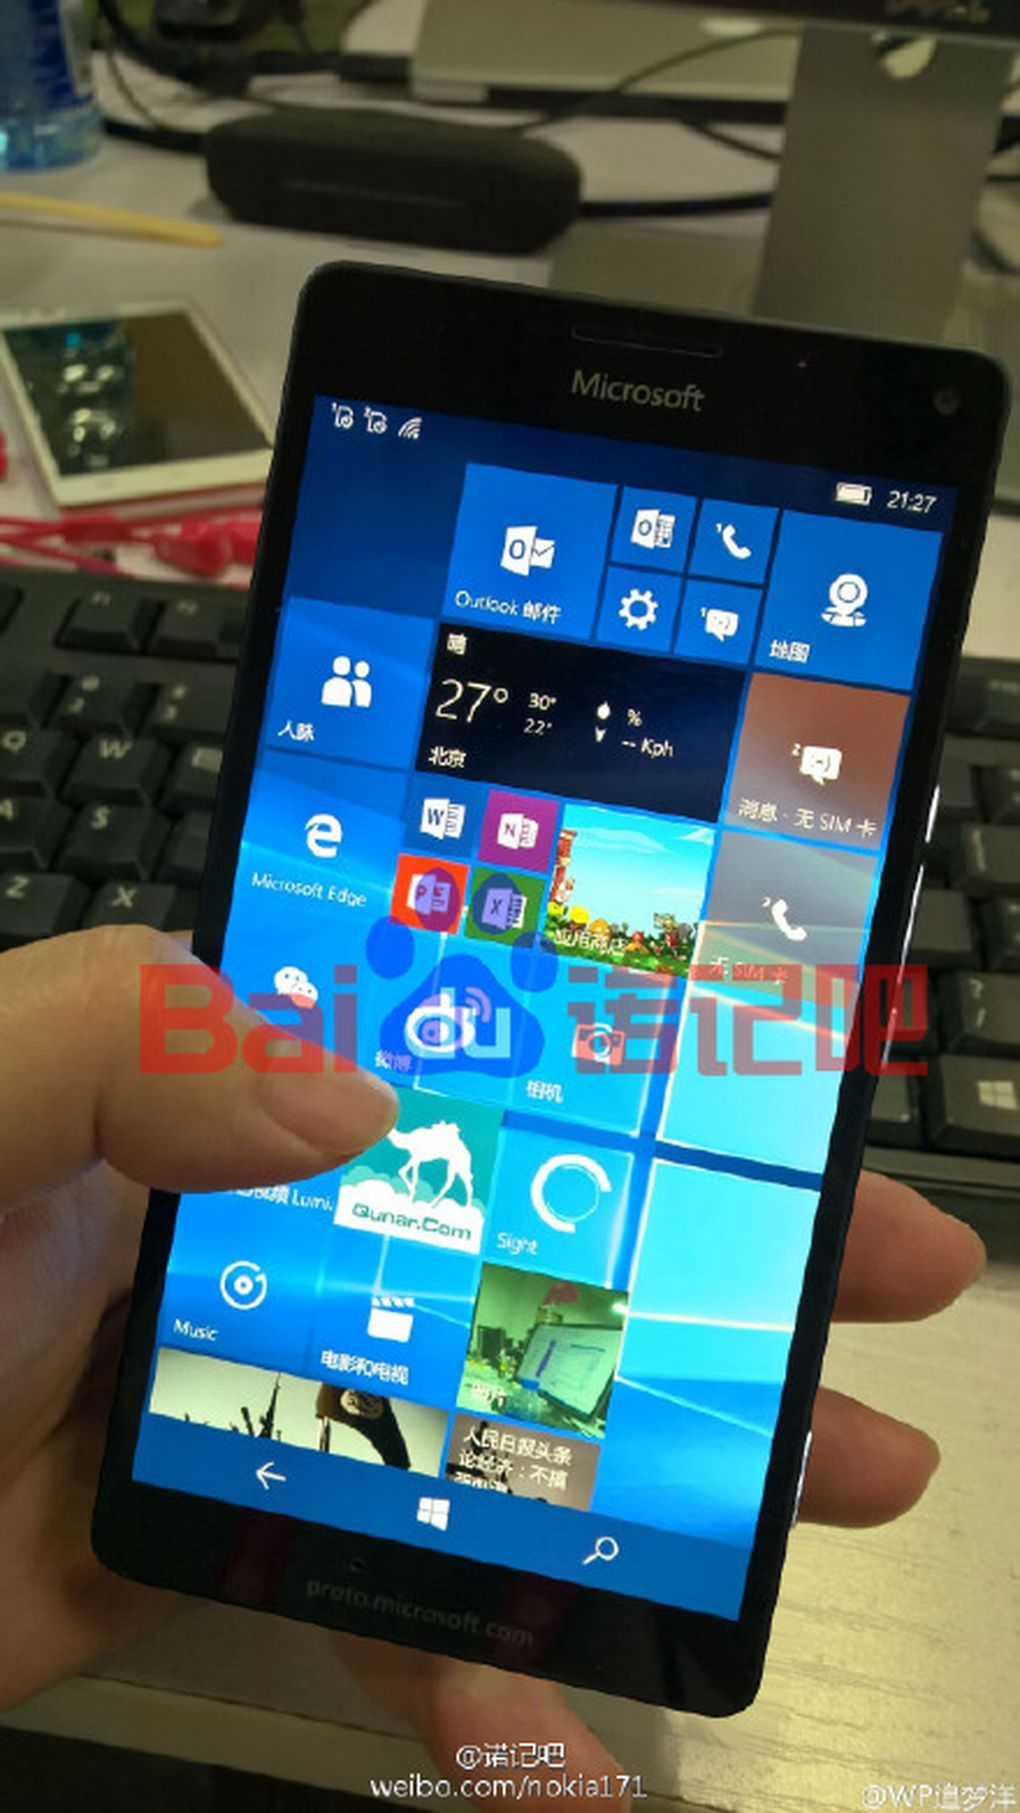 Microsoft's New Windows 10 Phones Shown In Early Pictures